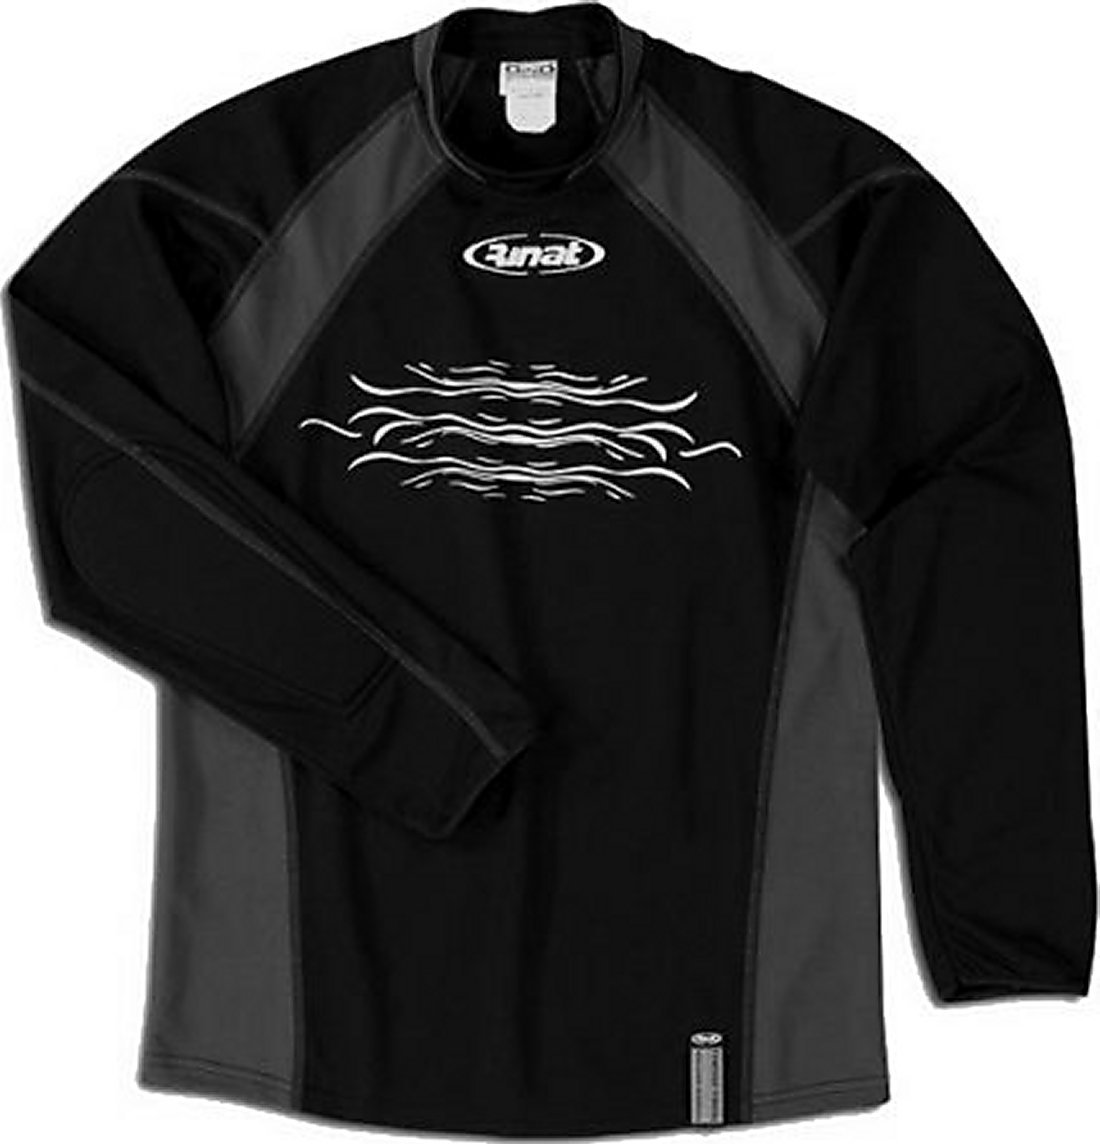 c0e3abab30f best Rinat Roma Soccer Goalkeeper Jersey - Black/Gray - Adult XL ...